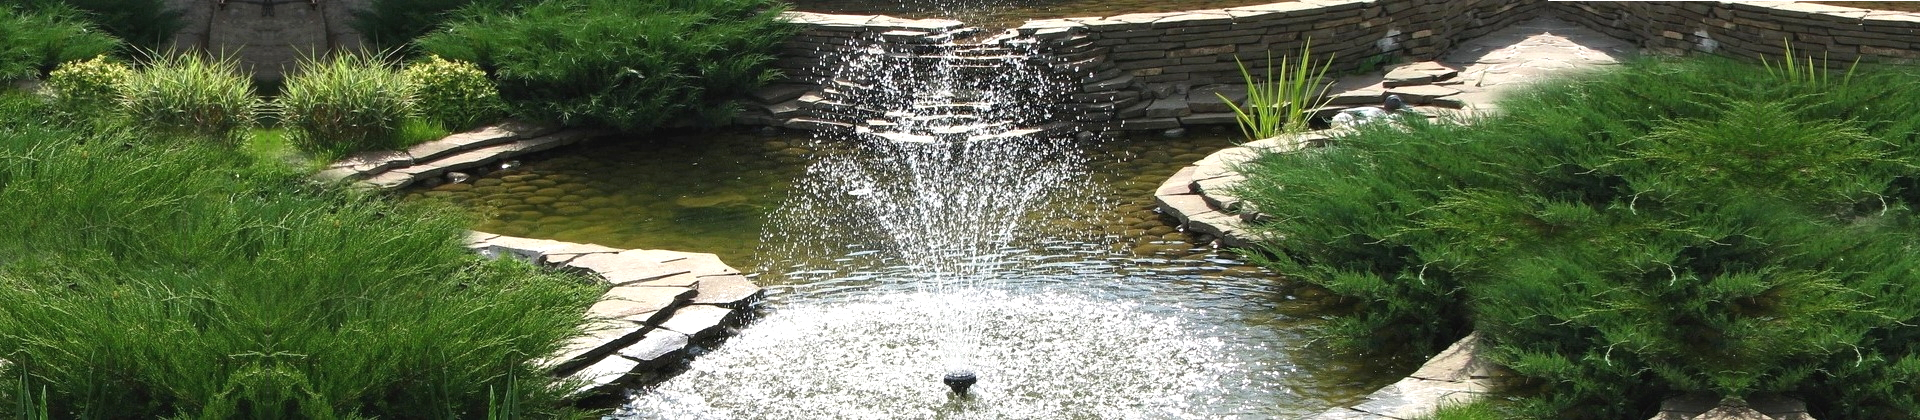 6 Best Pond Fountains – Aesthetics With More Features To It